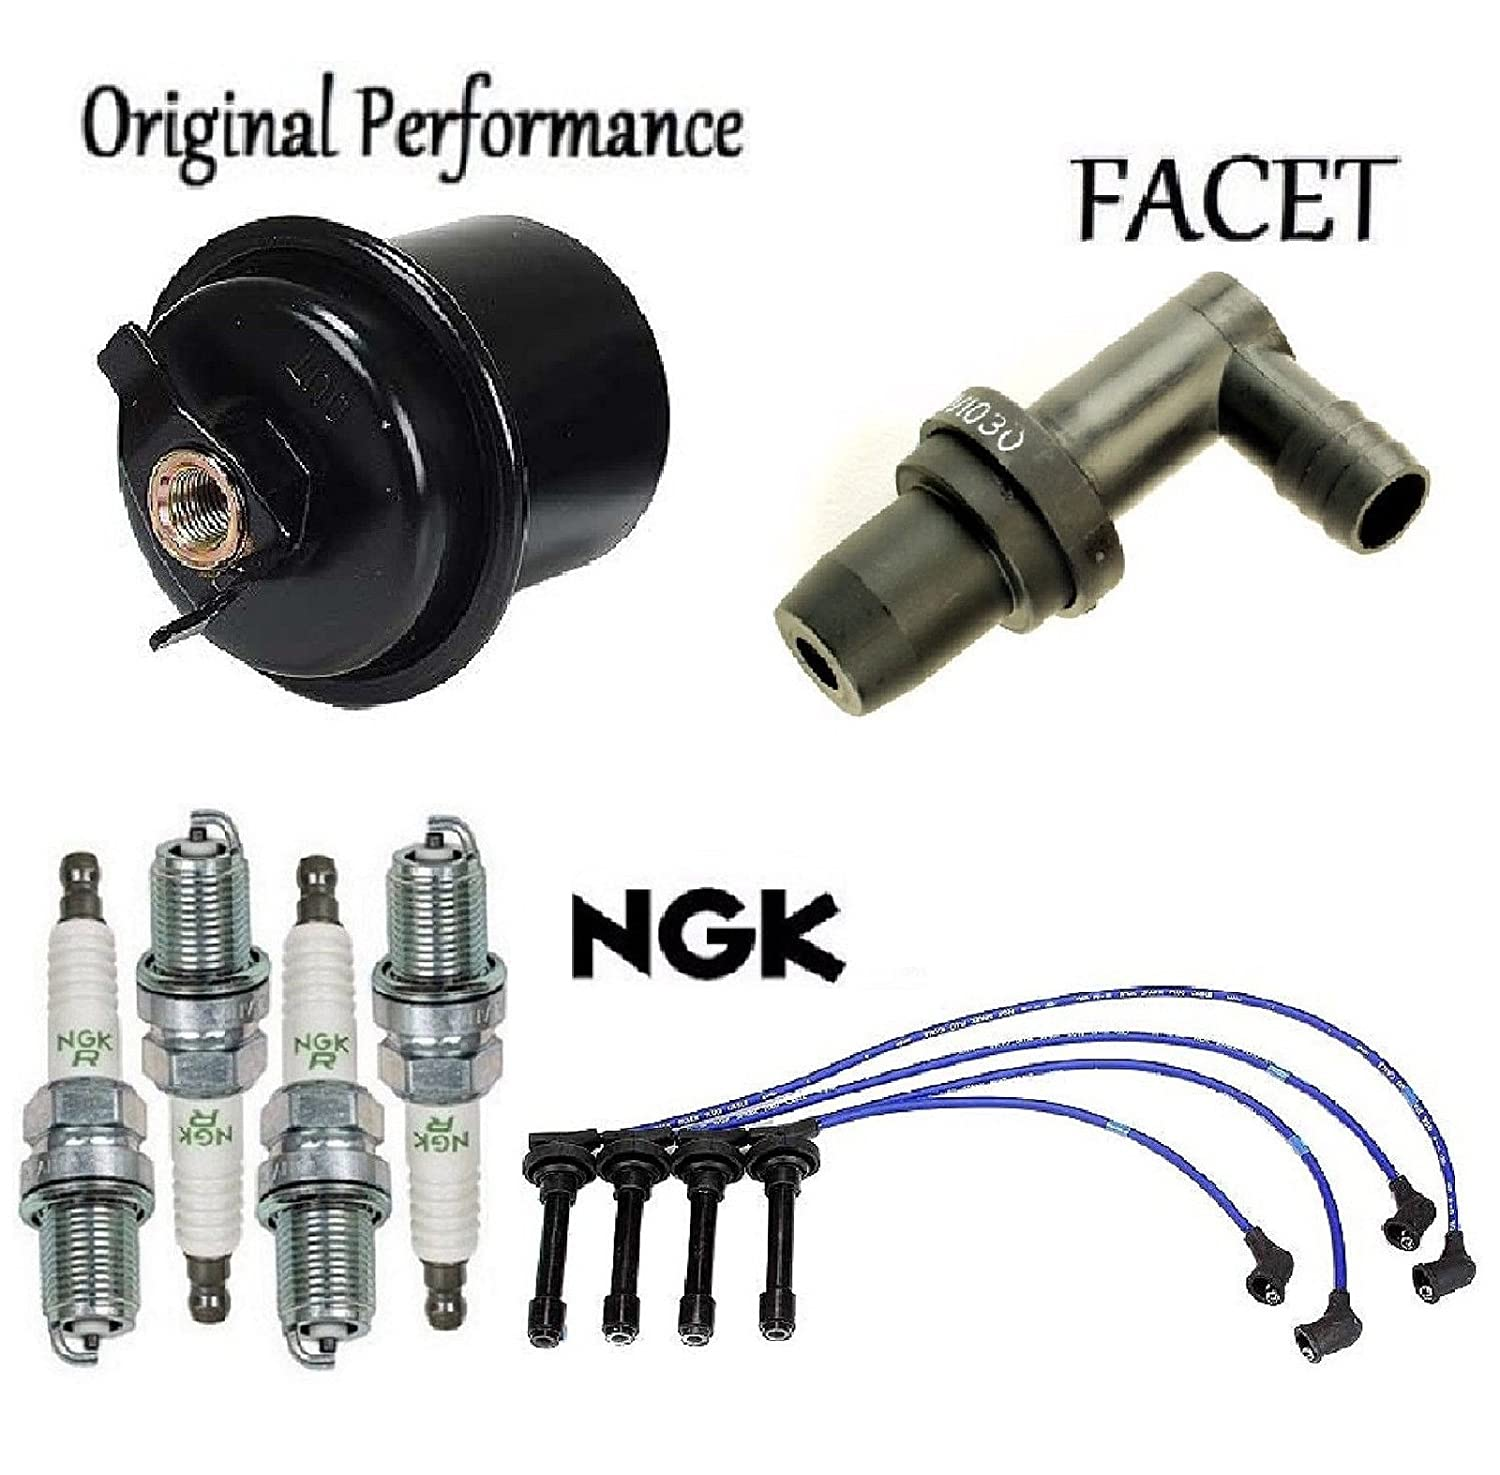 Tune Up Kit Fuel Filter Wires /& Plugs PCV Valve for Honda CR-V 2.0L; B20Z2 Eng 1999 2001